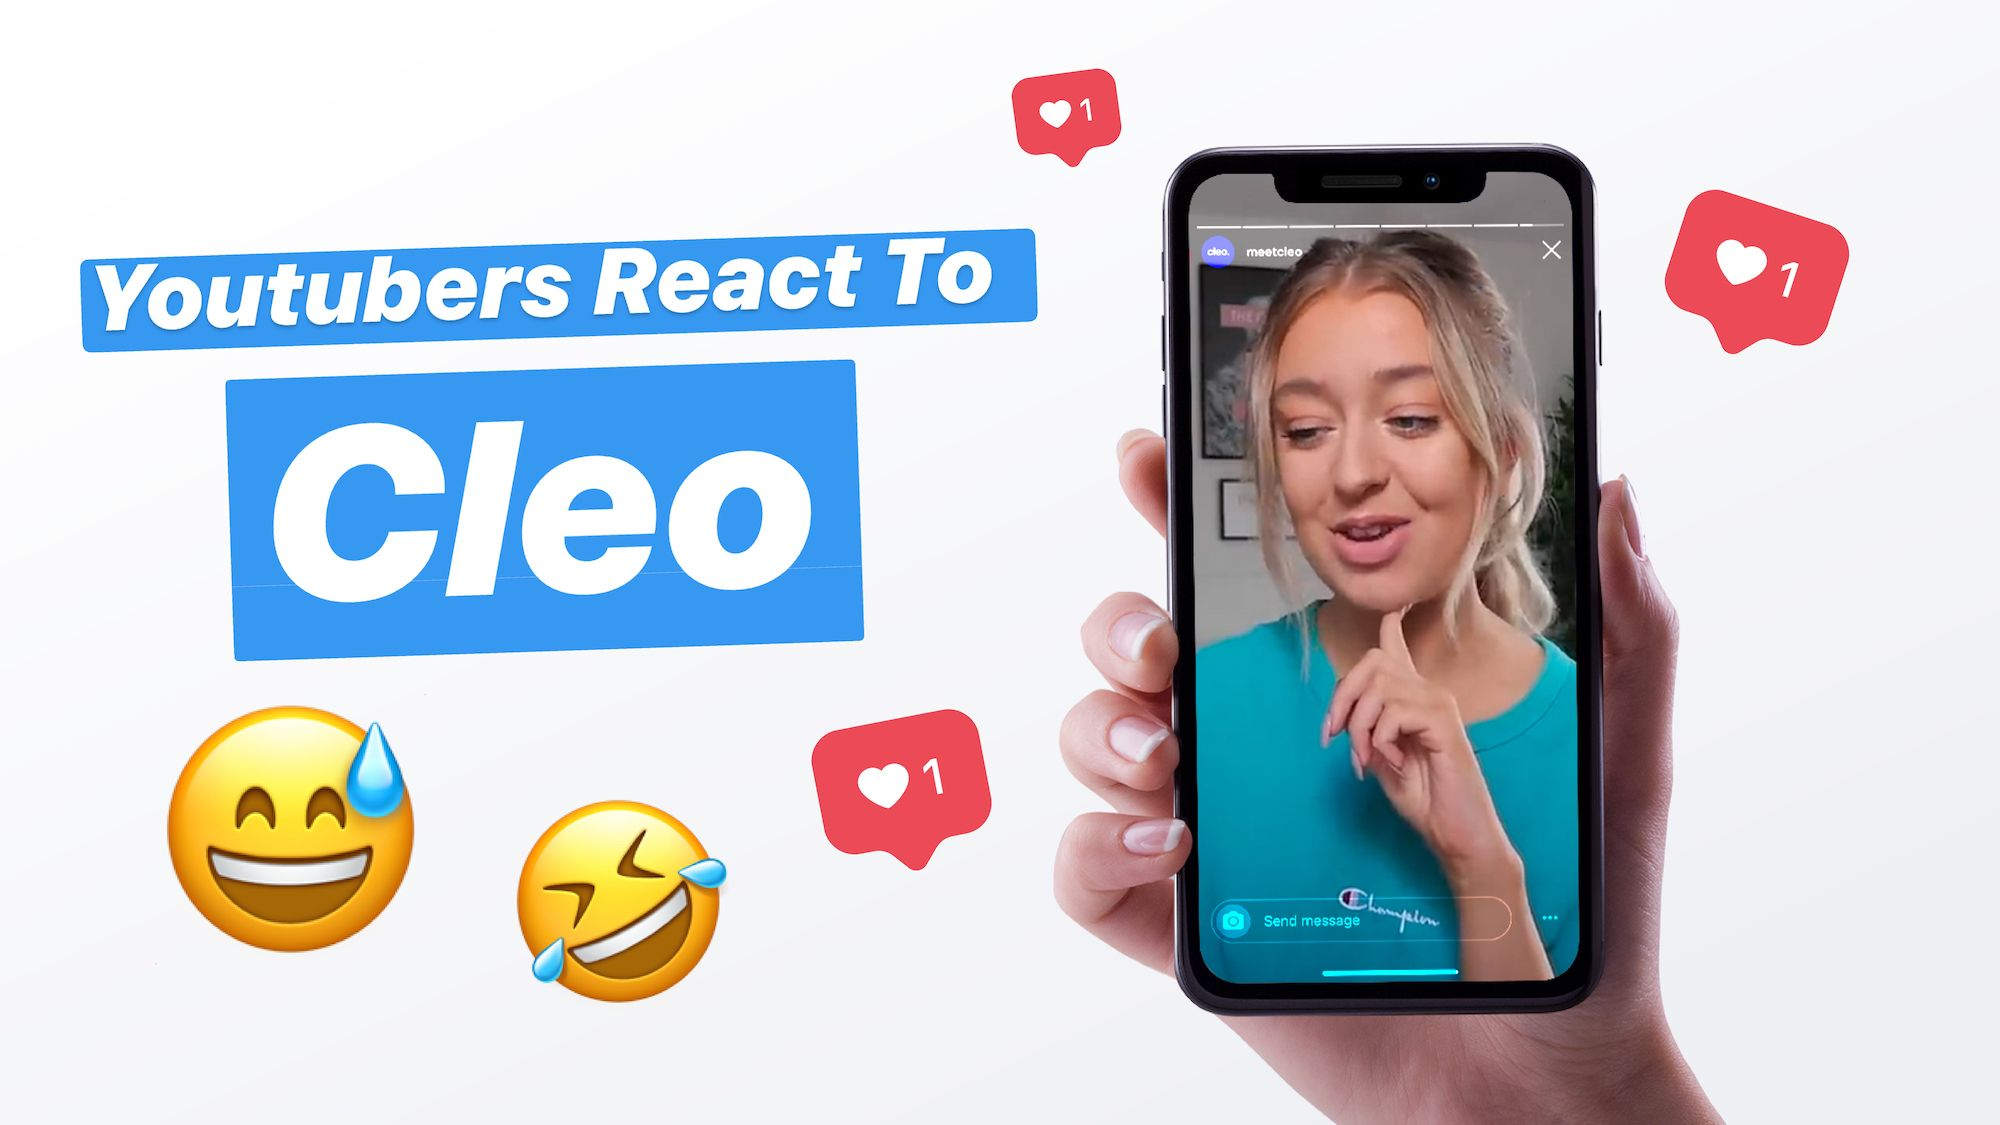 Youtubers react to Cleo